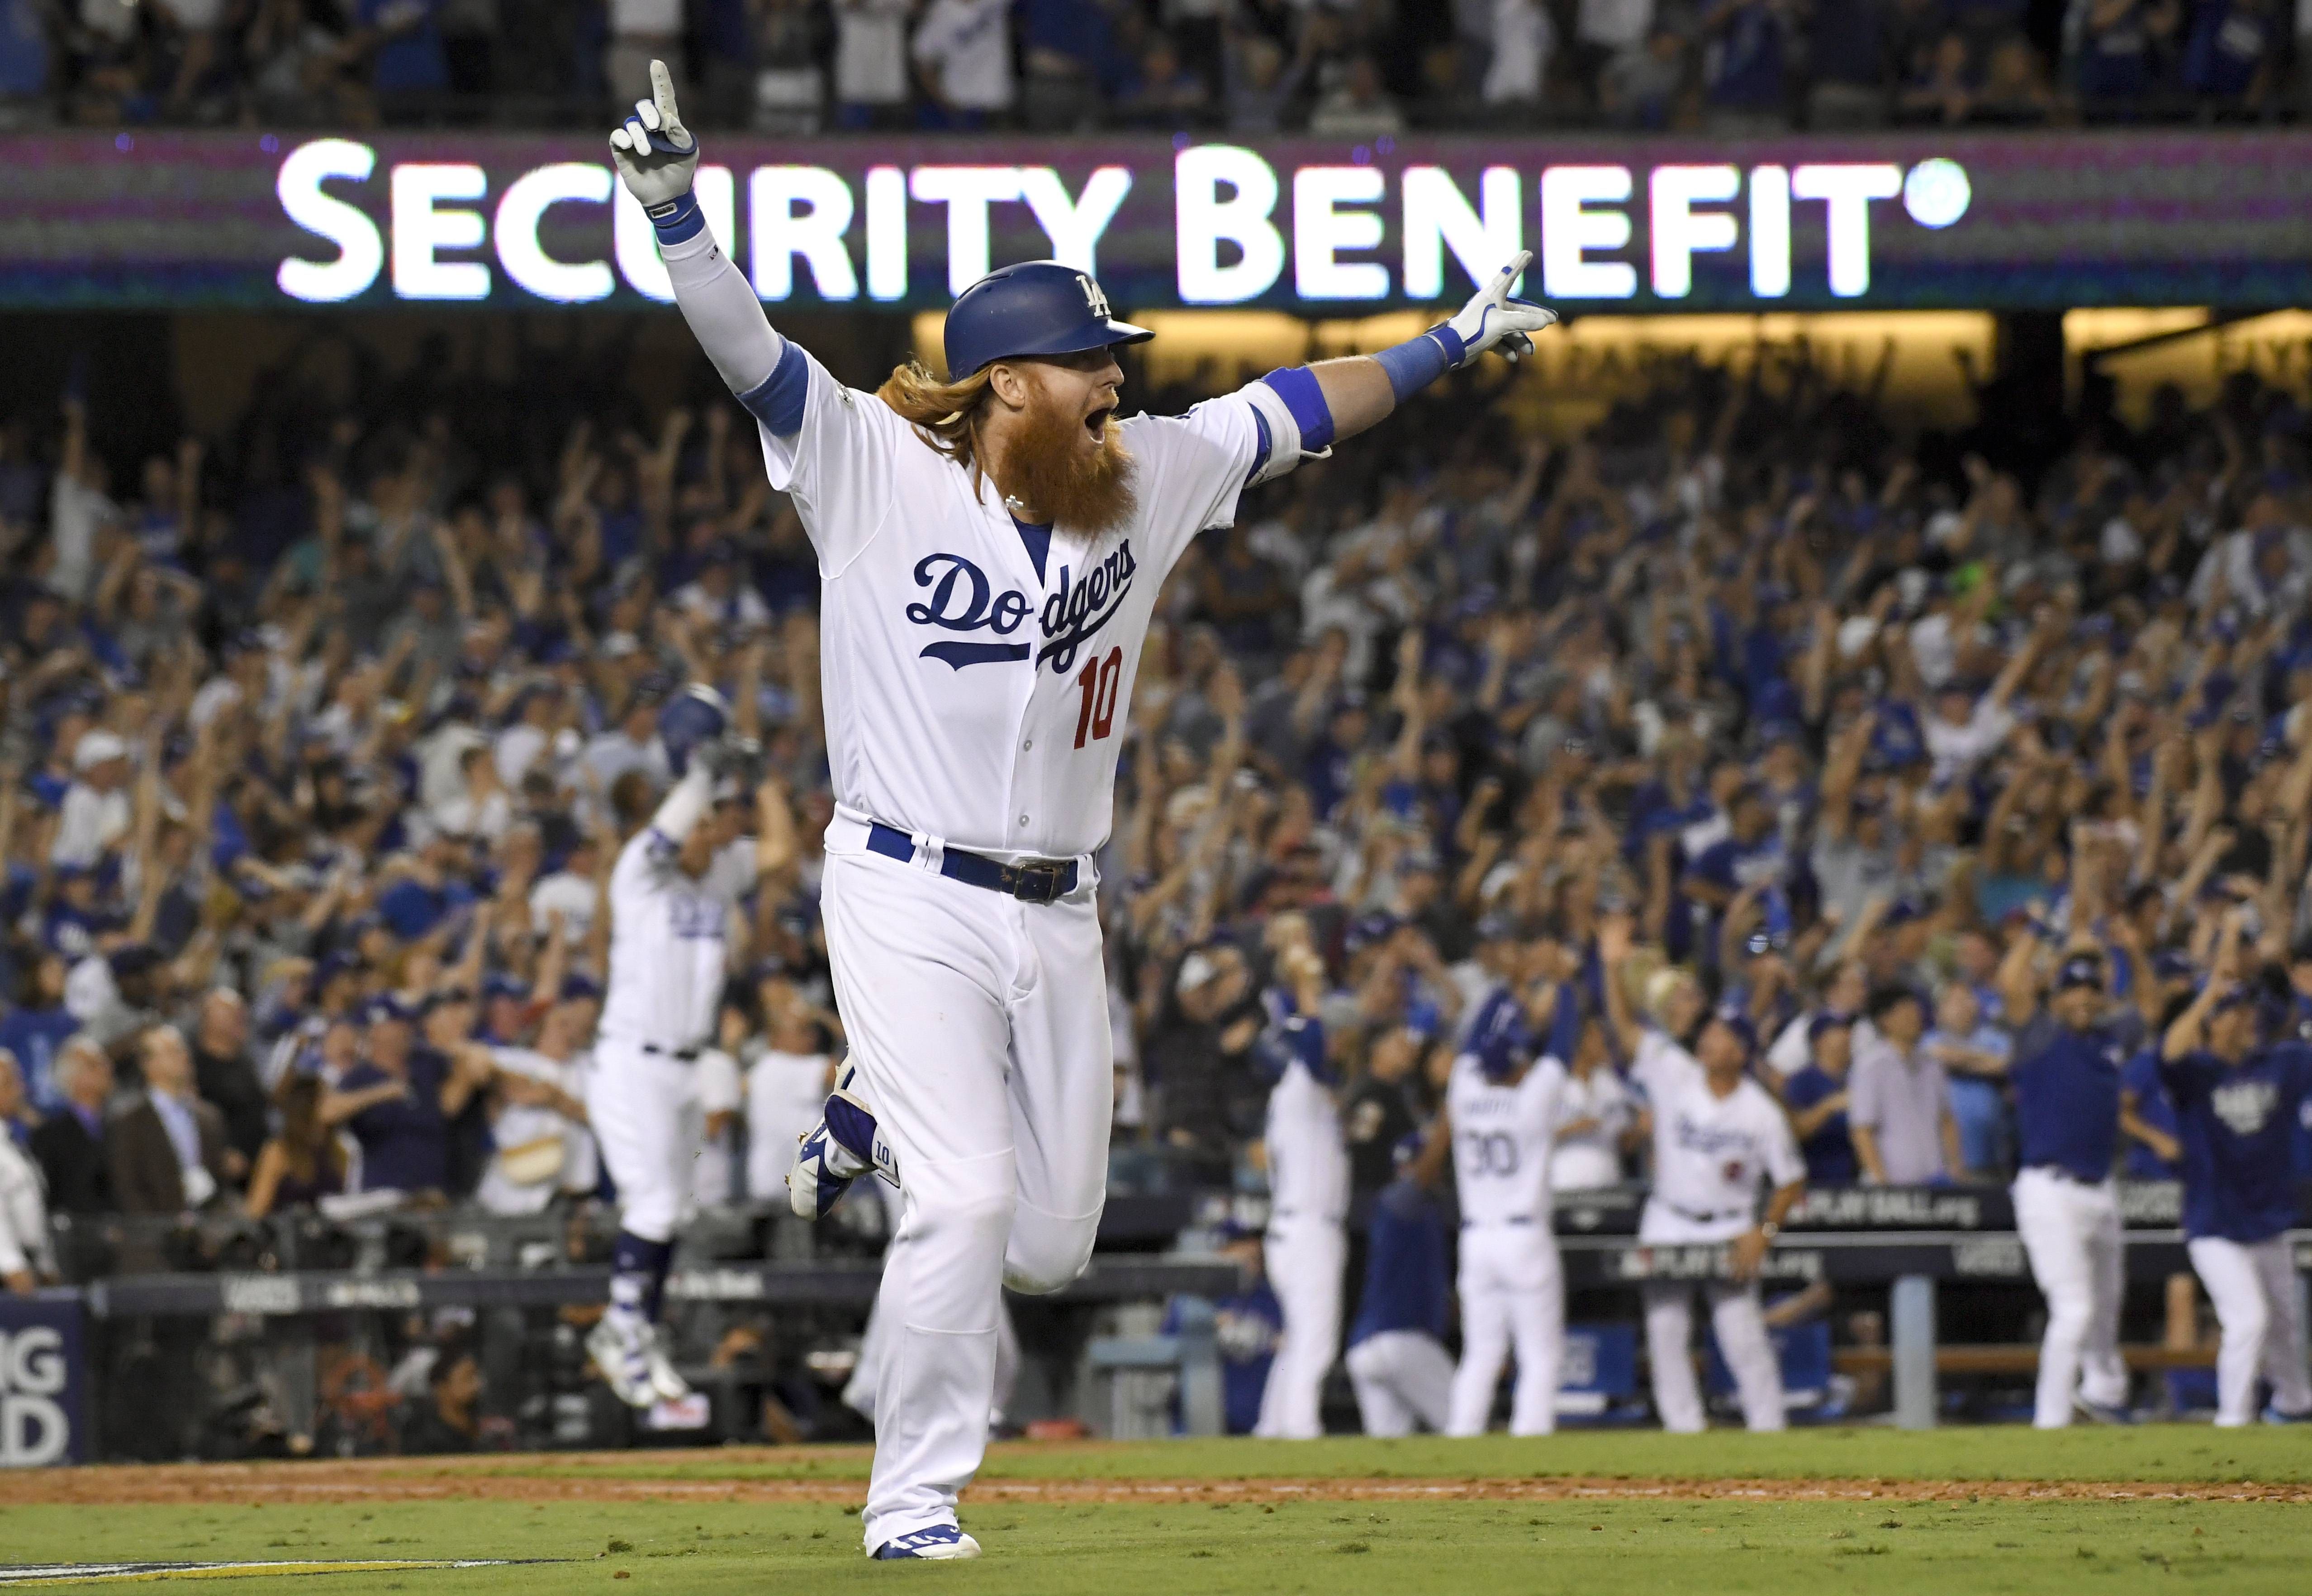 Los Angeles Dodgers' Justin Turner celebrates after a three-run walk off home run against the Chicago Cubs during the ninth inning of Game 2 of baseball's National League championship series in Los Angeles, Sunday, Oct. 15, 2017. (AP Photo/Mark J. Terrill)